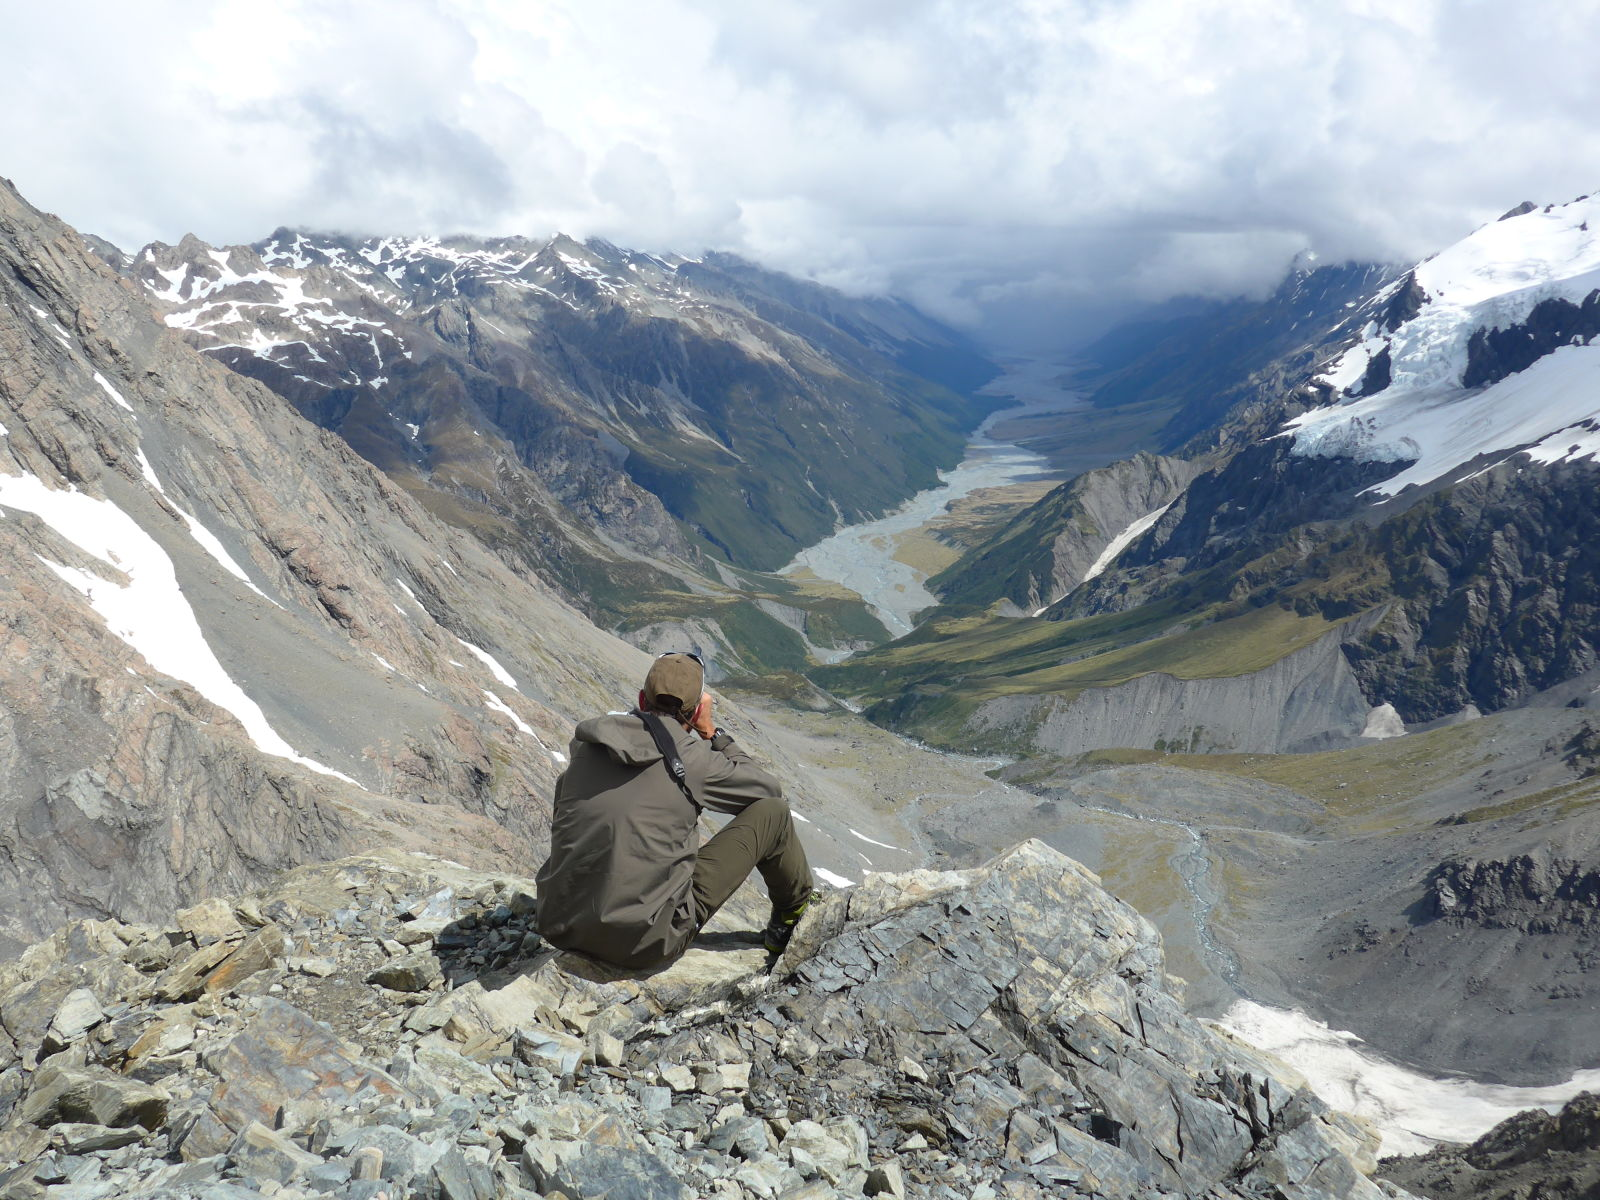 Wolfgang Schwarz glassing in the vast Southern Alps of New Zealand.